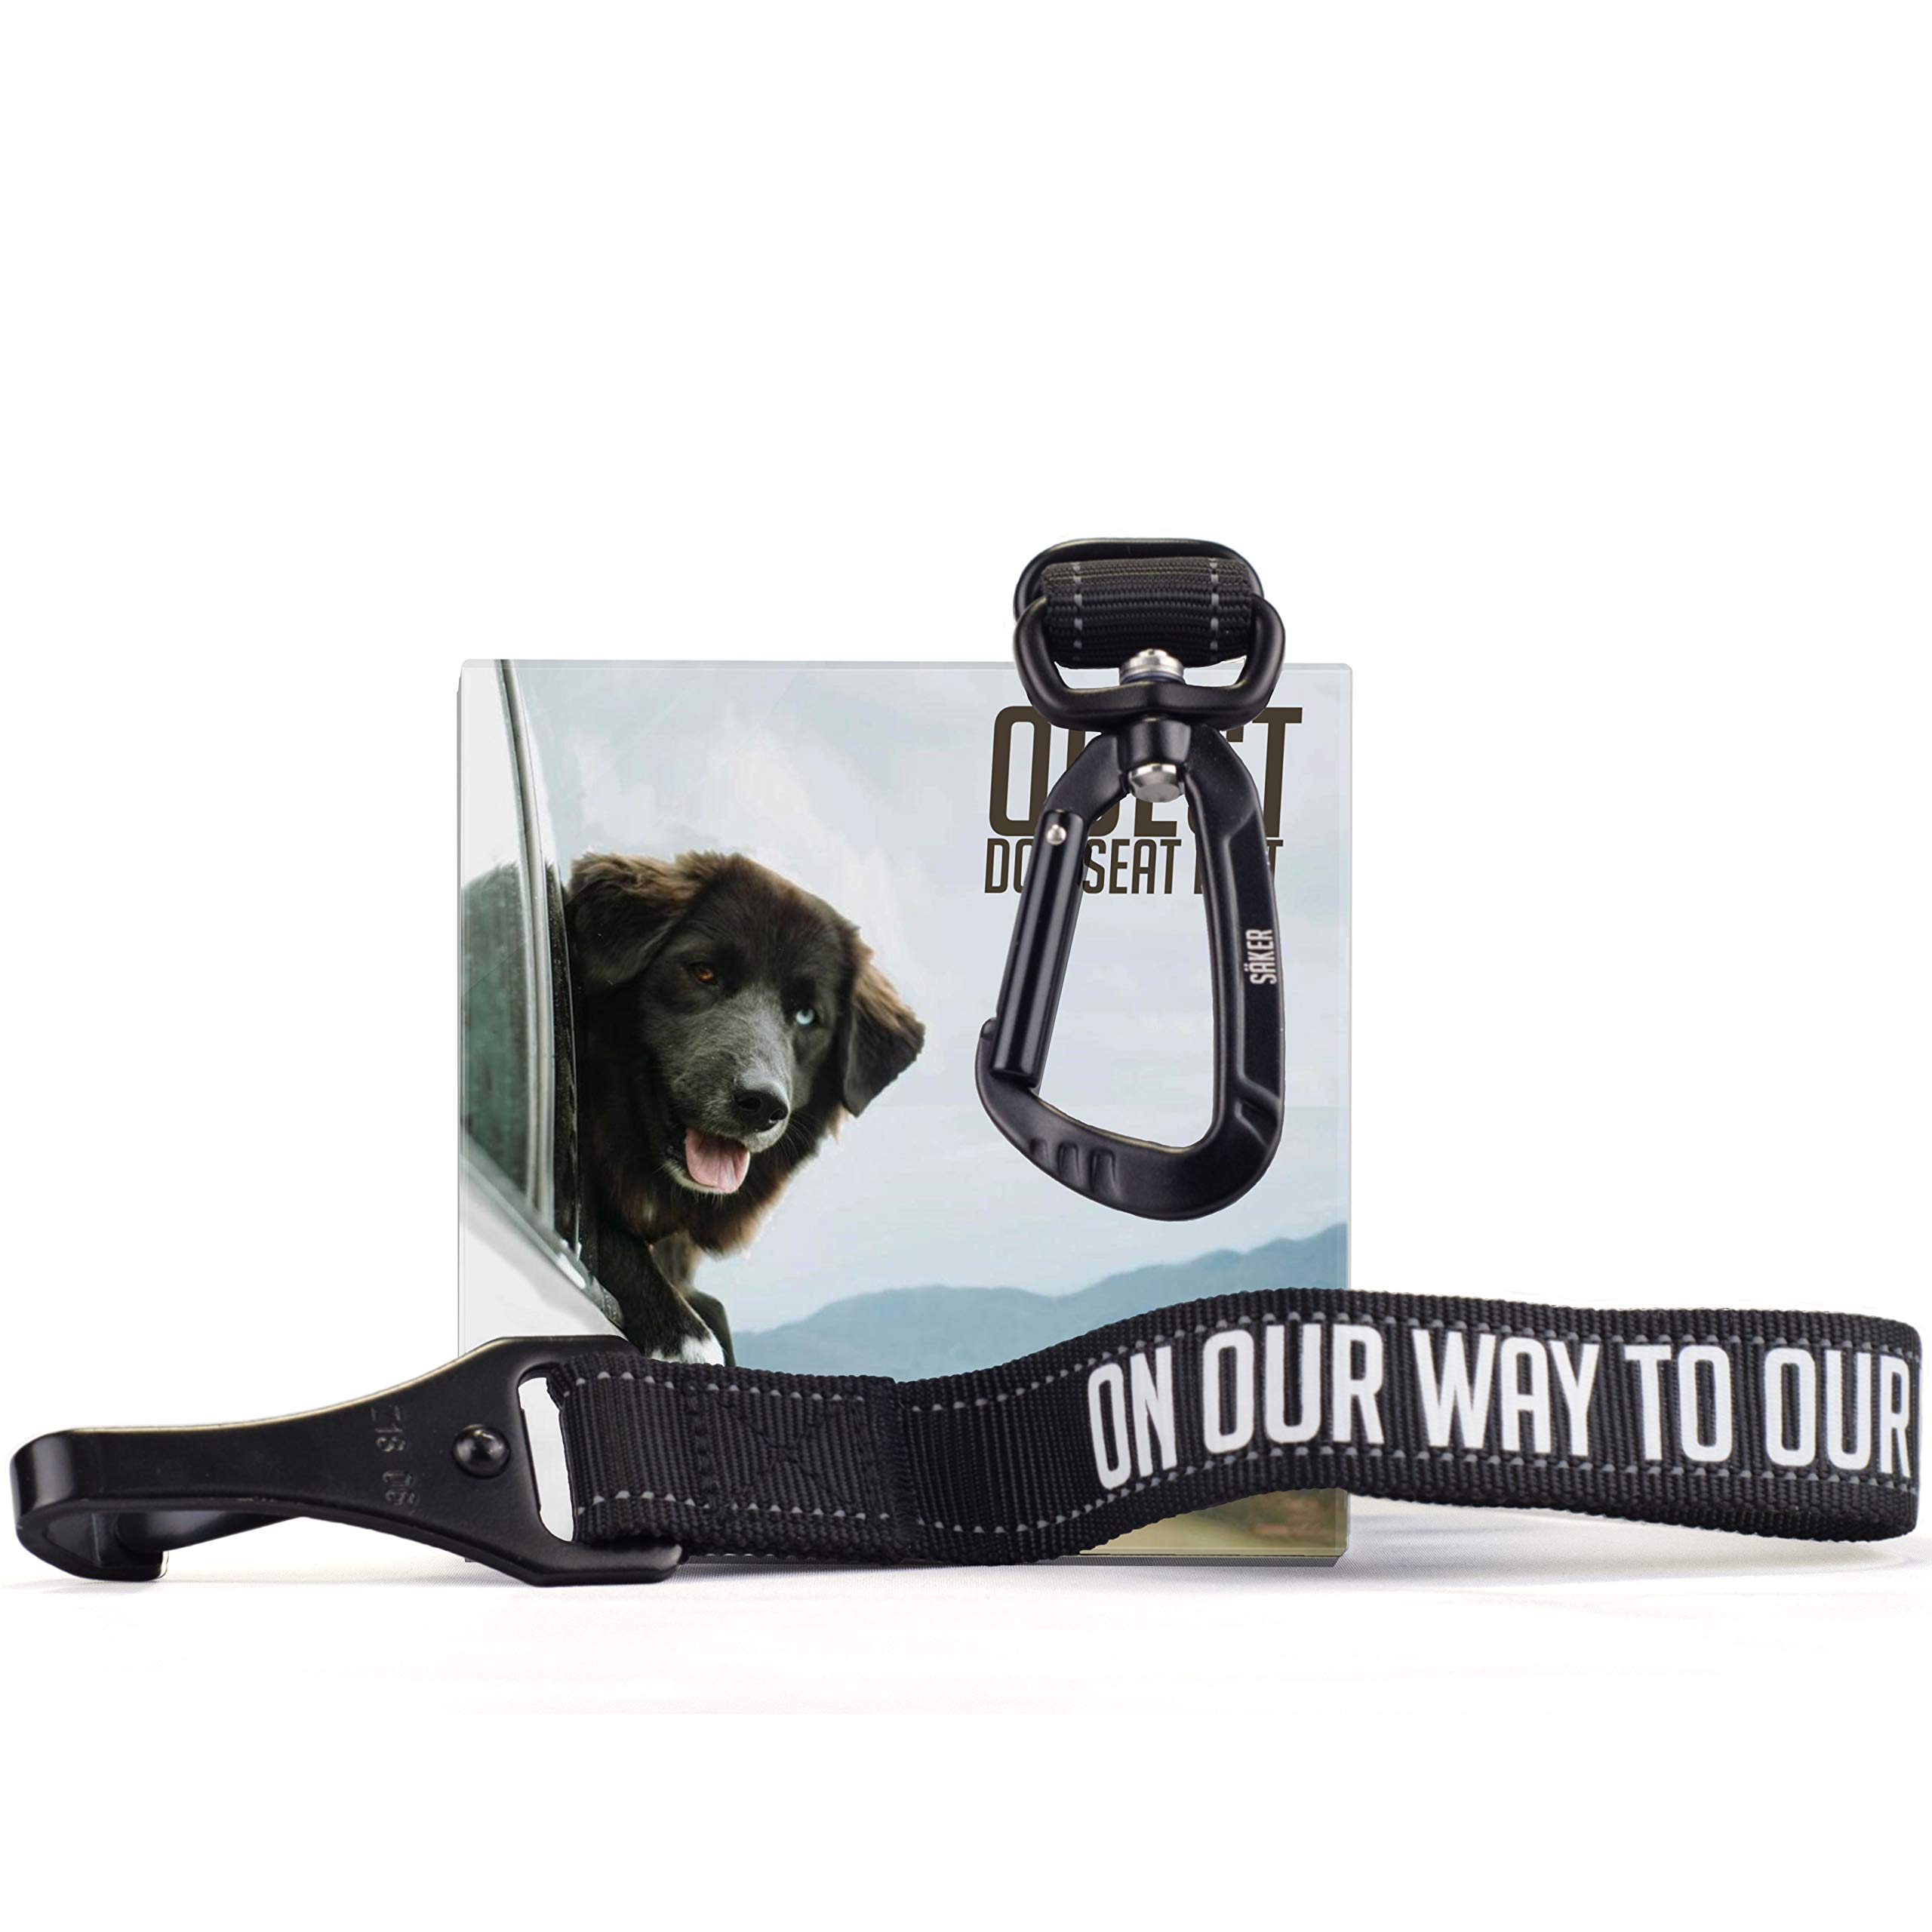 Säker Dog Seat Belt with Heavy Duty Carabiner, Premium Canine Safety Belt Adjustable Length from 21 to 32 inches, Car Seatbelt for Most Dog Breeds, Universal Compatibility with Any Dog Harness by Säker